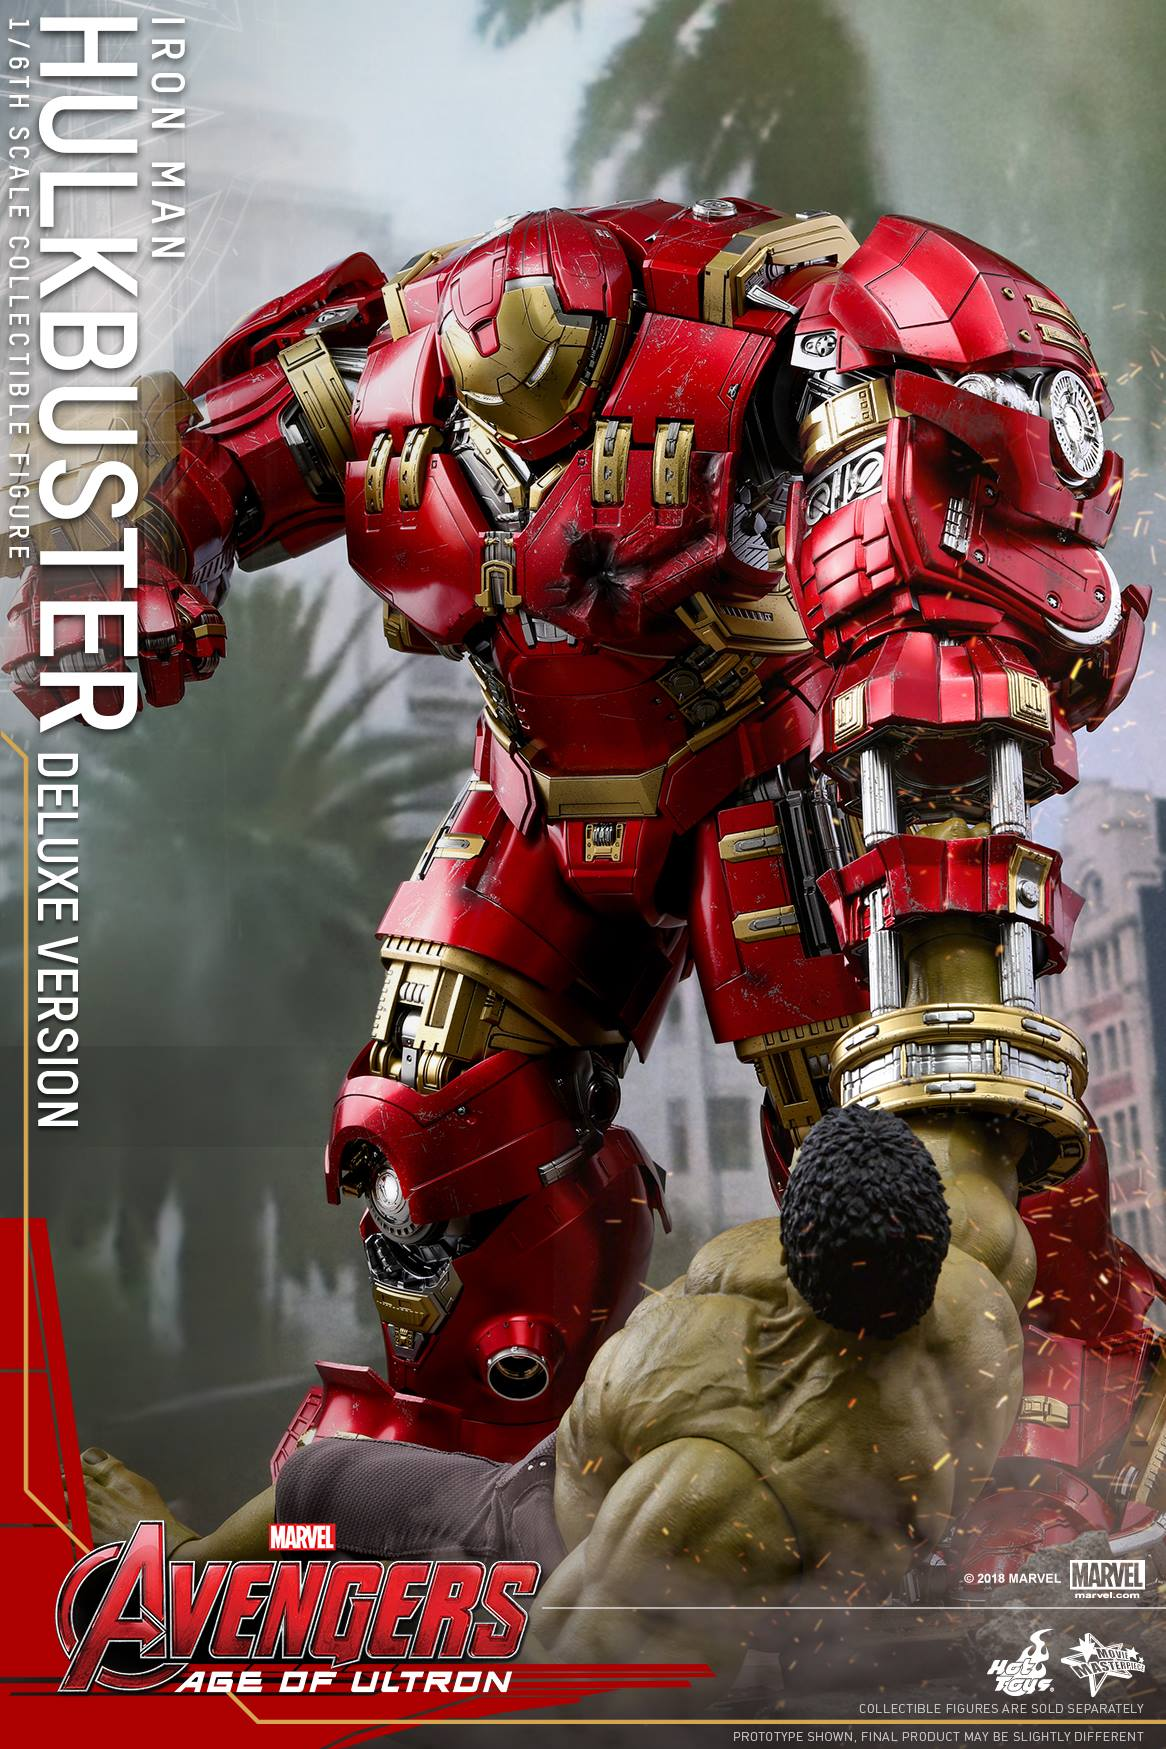 Deluxe Hot Toys Hulkbuster Iron Man Reissue Amp Accessories